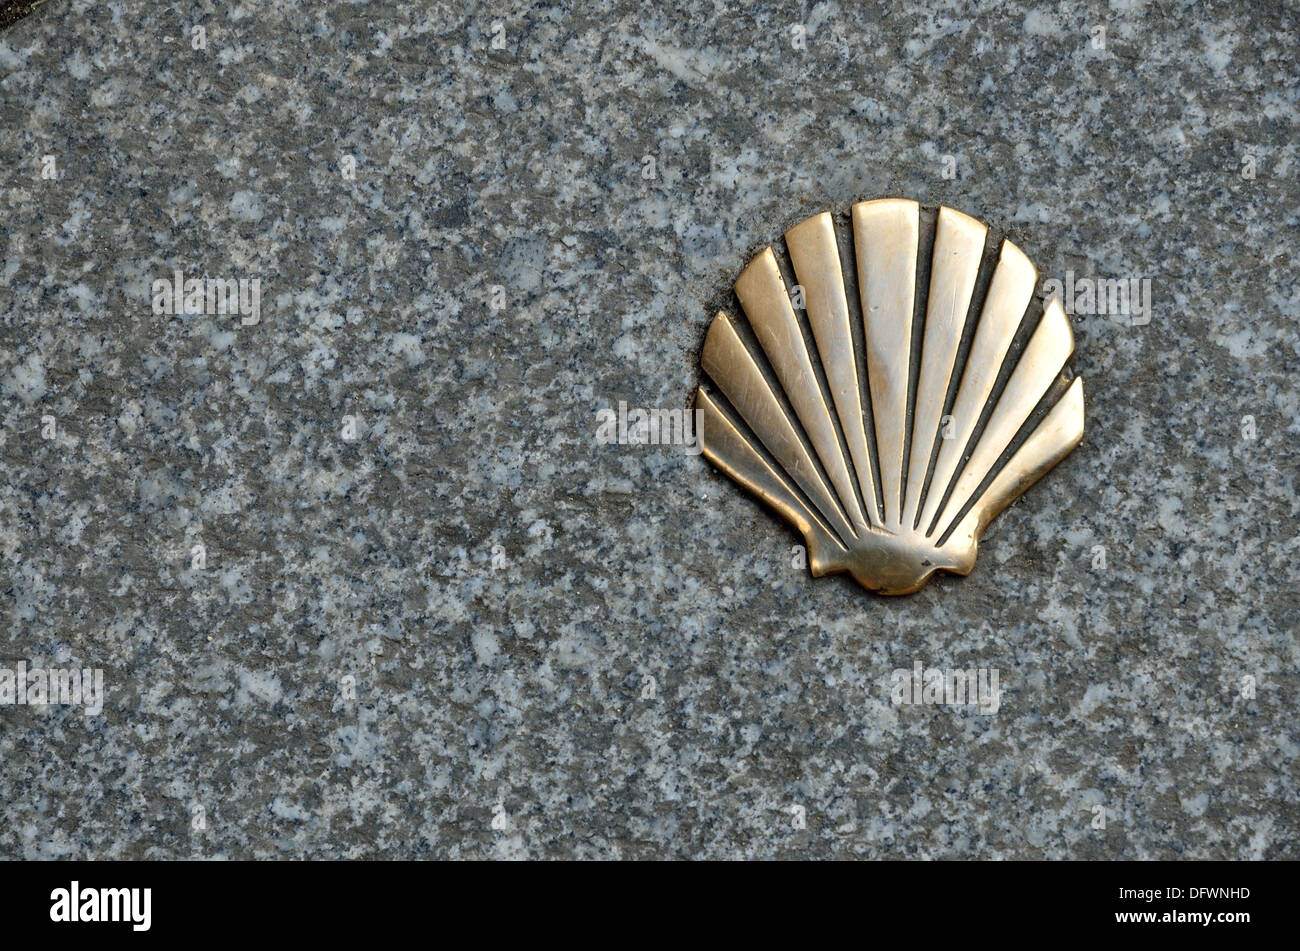 Brass Scallop Shell Symbol Of The Pilgrims On The Way Of St James